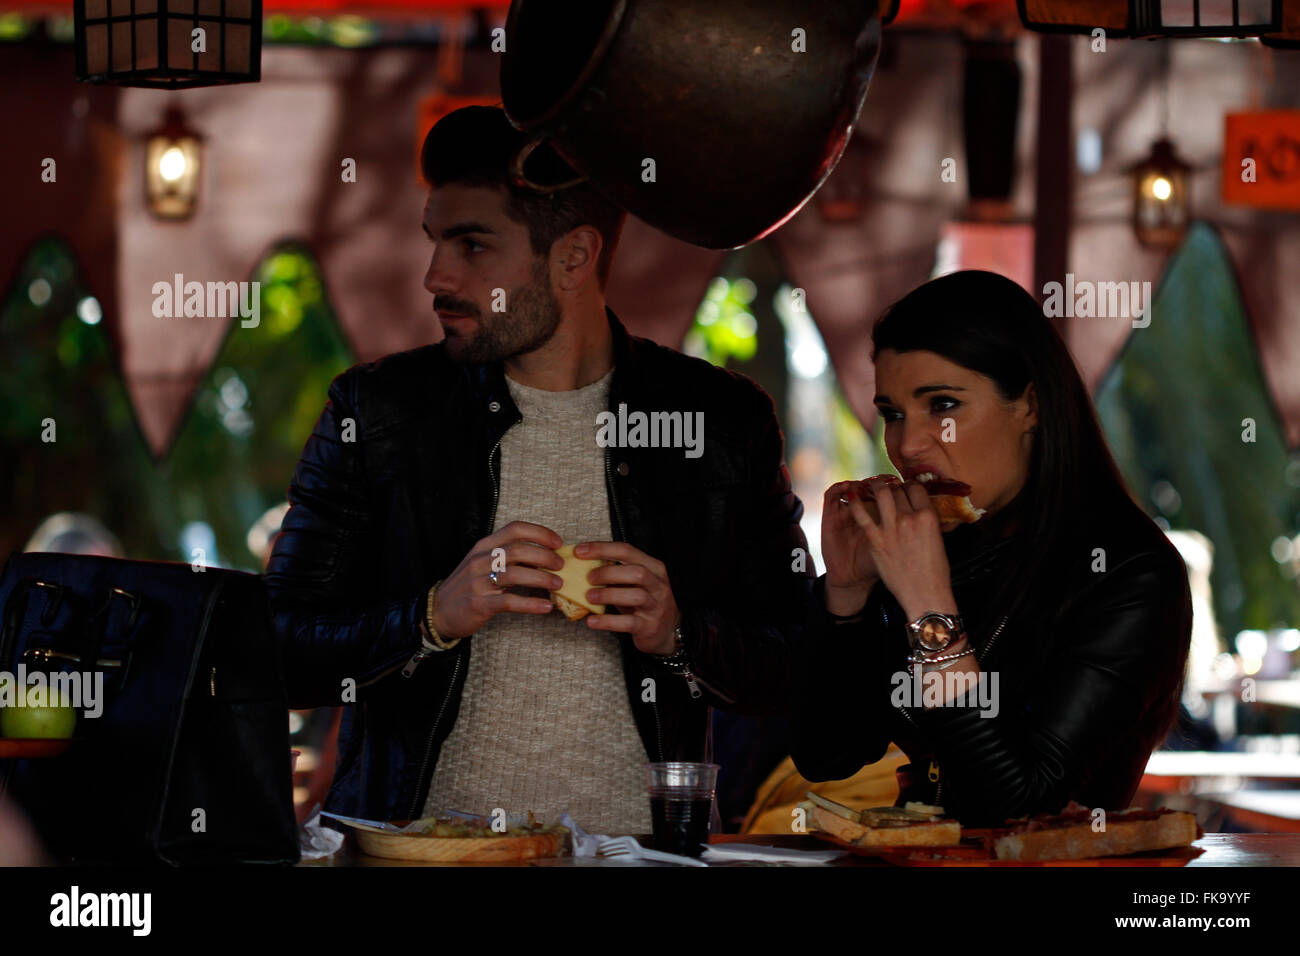 Woman and man eating ham and cheese - Stock Image